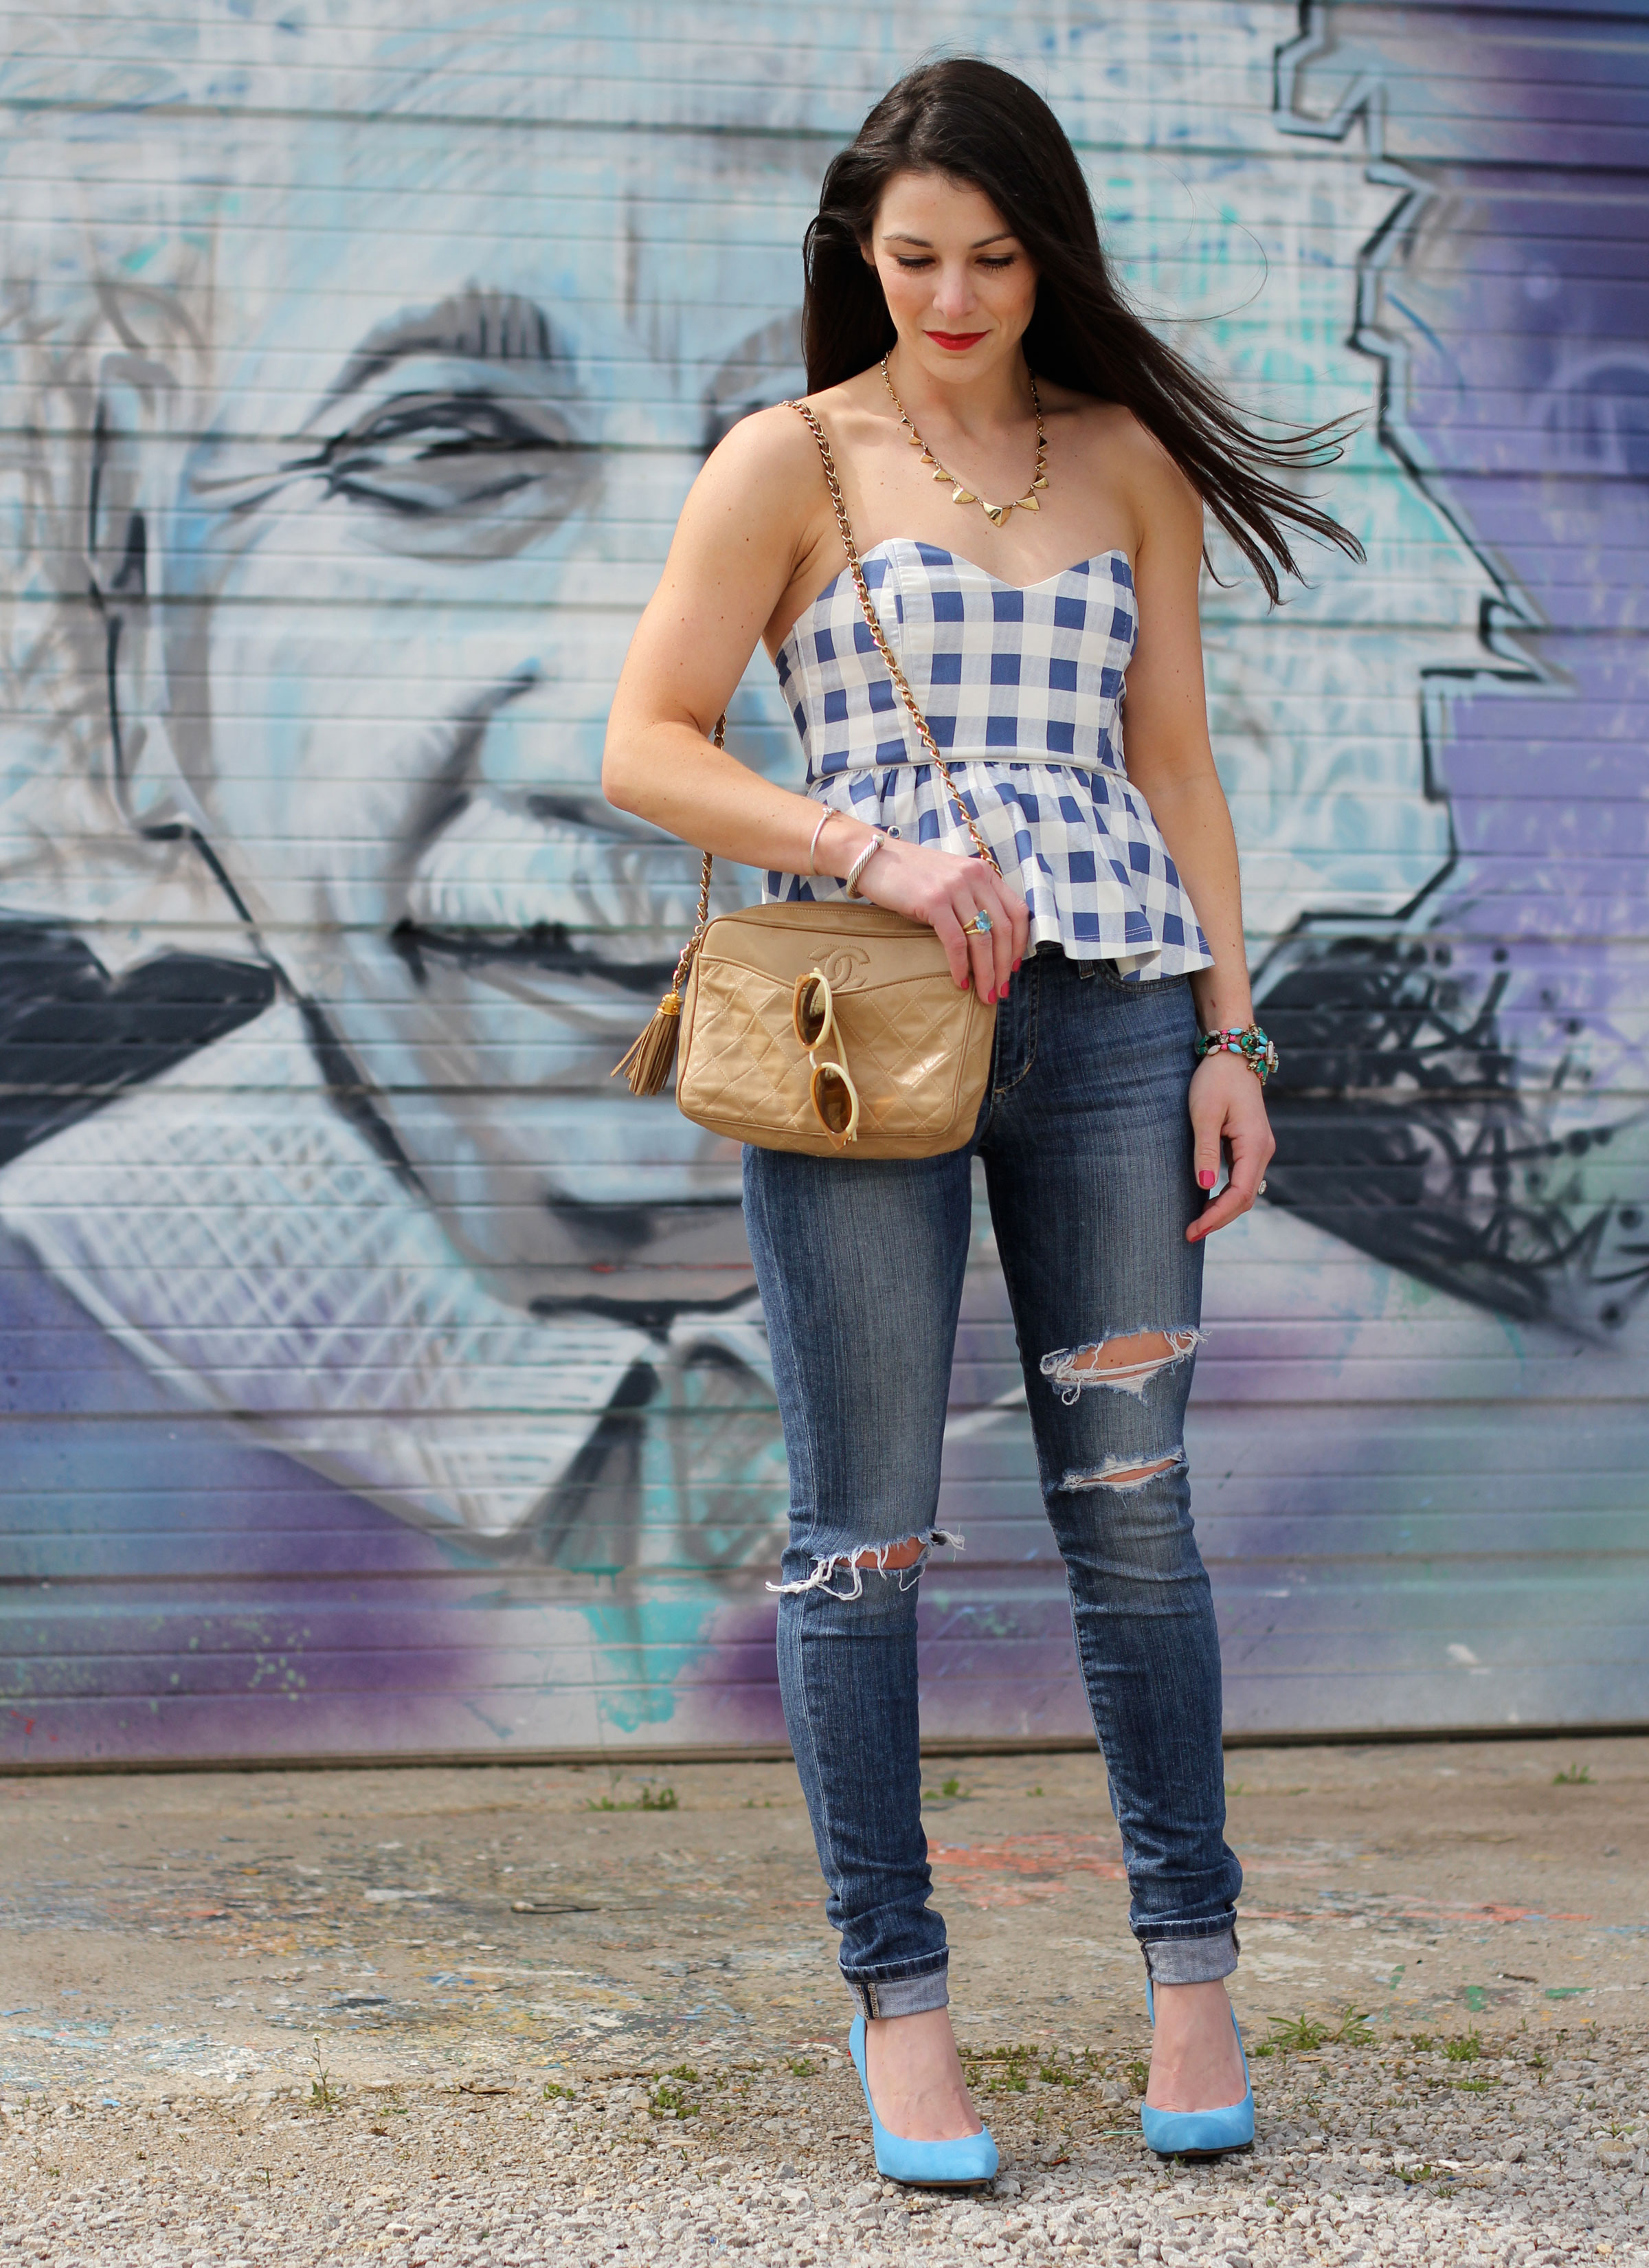 Gingham Top, Distressed Joe's Jeans, Blue Jessica Simpson Claudette Pumps, Vintage Chanel Bag, Tory Burch Sunglasses, Spray Paint Mural